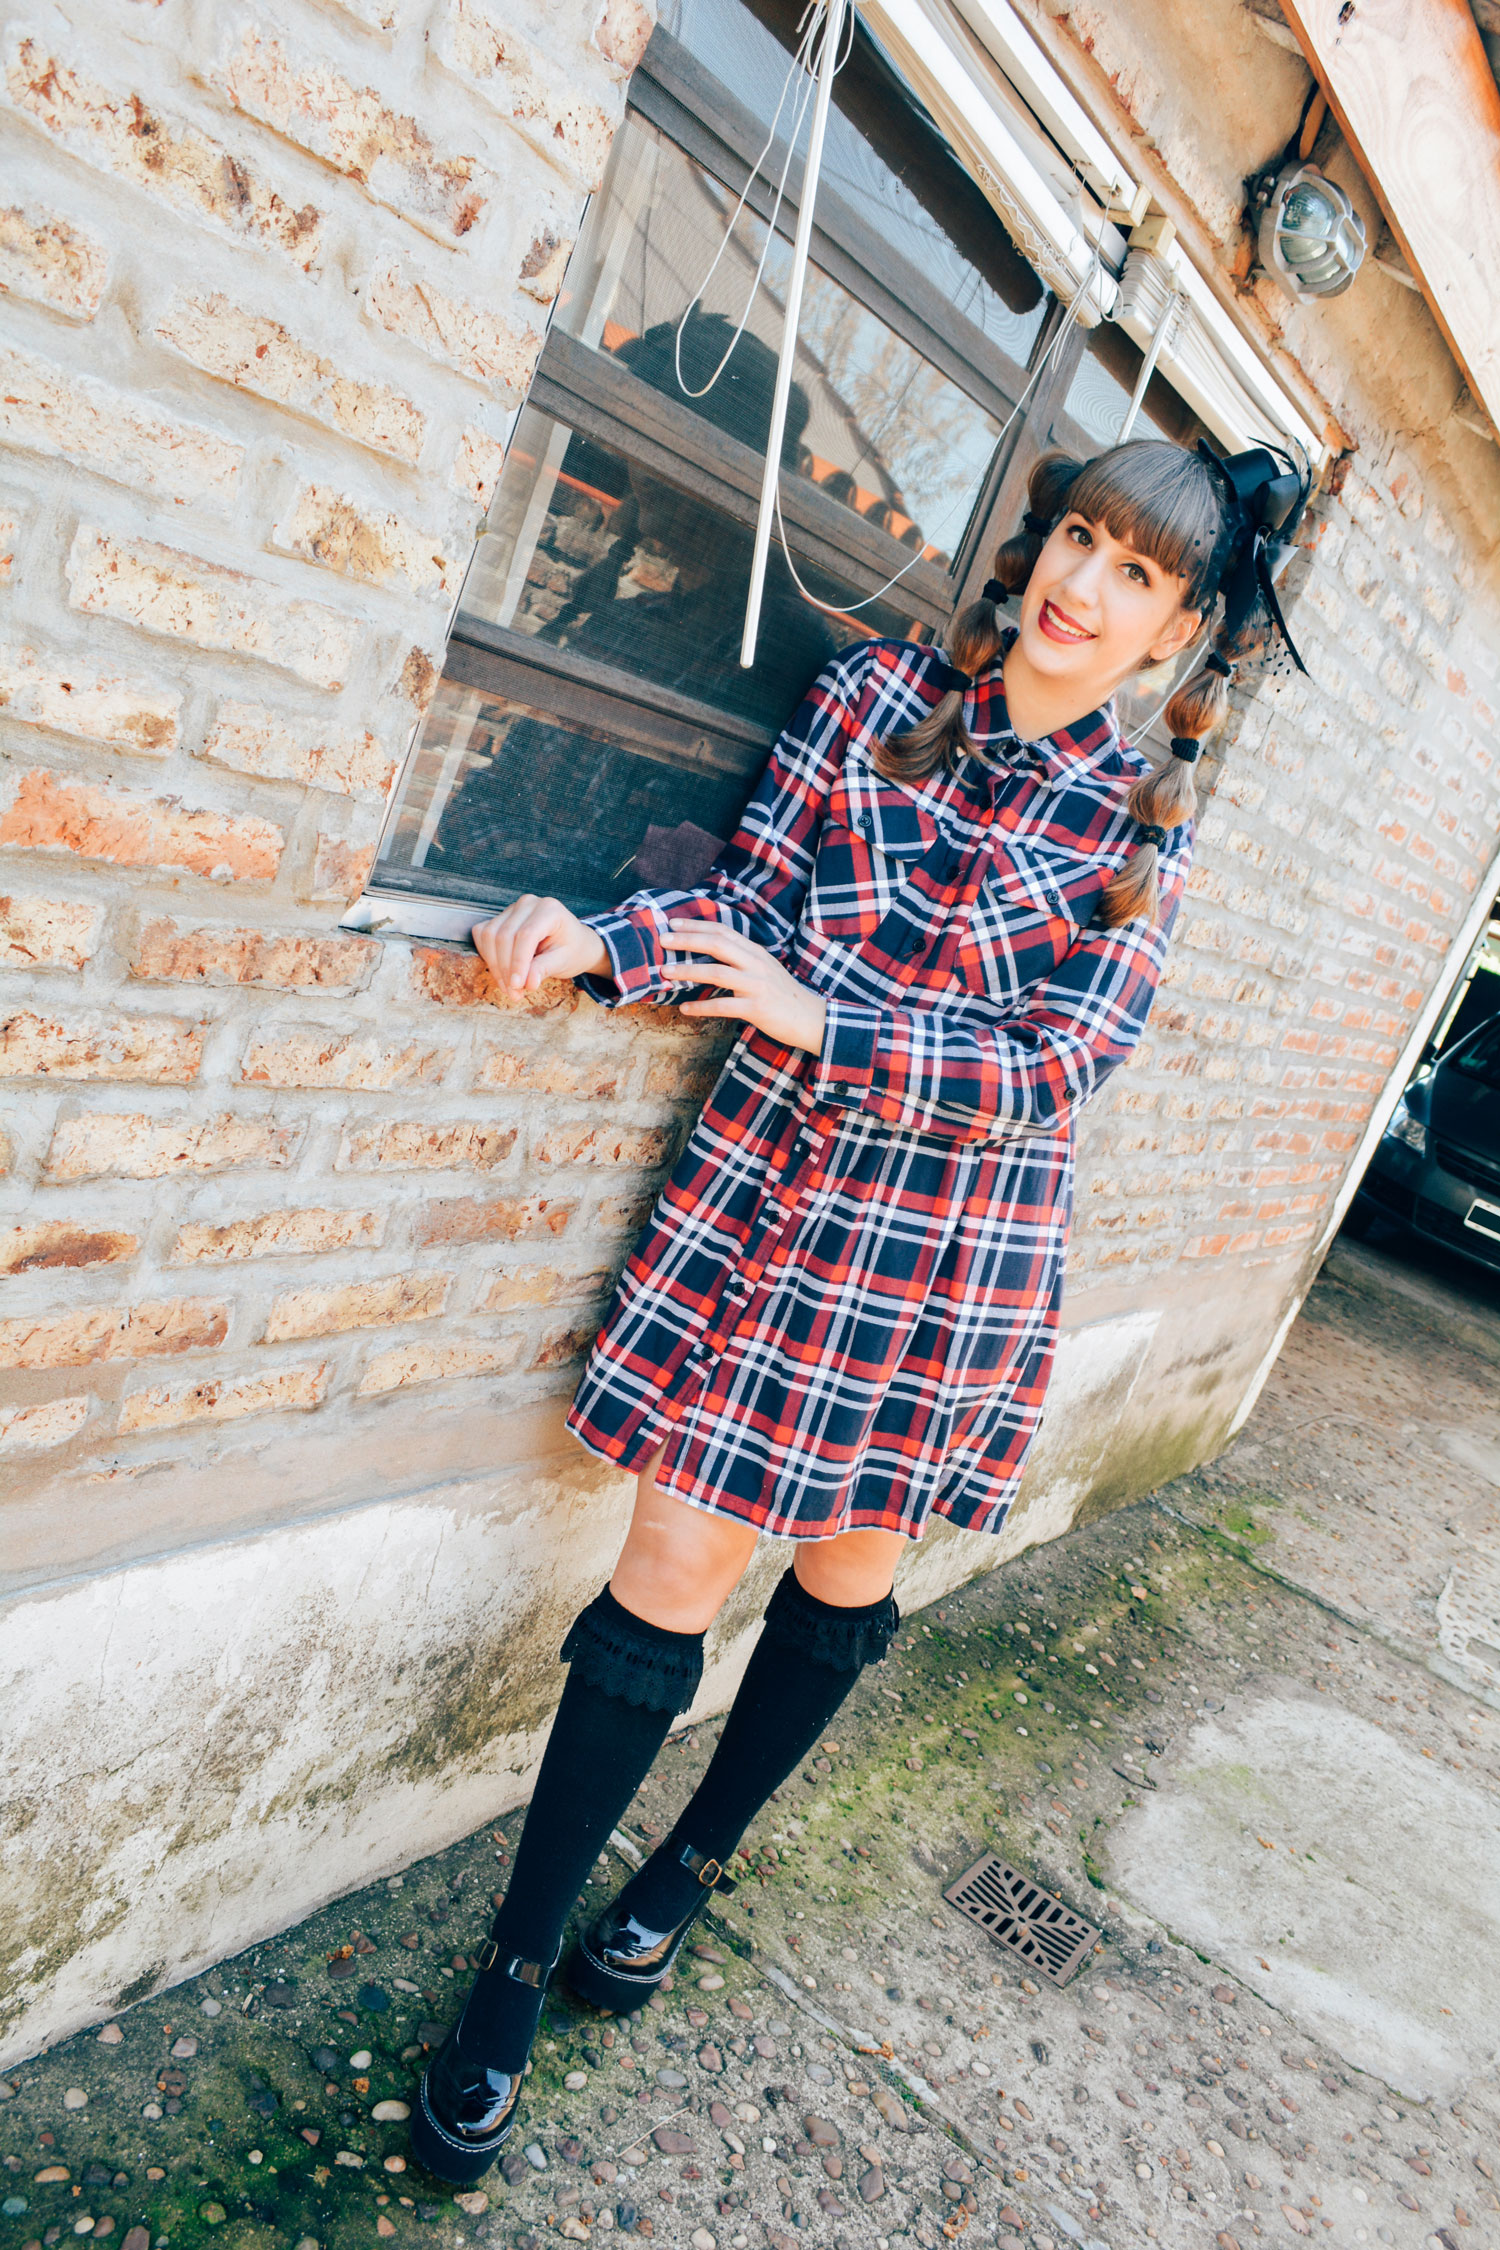 fashion, fashionista, moda, blogger argentina, fashion blogger, fashion blogger argentina, blogger, lifestyle blogger, thoughts, ootd, outfit, style, look, outfit of the day, lookbook, what i wore, style, winter style, autumn style, aw style